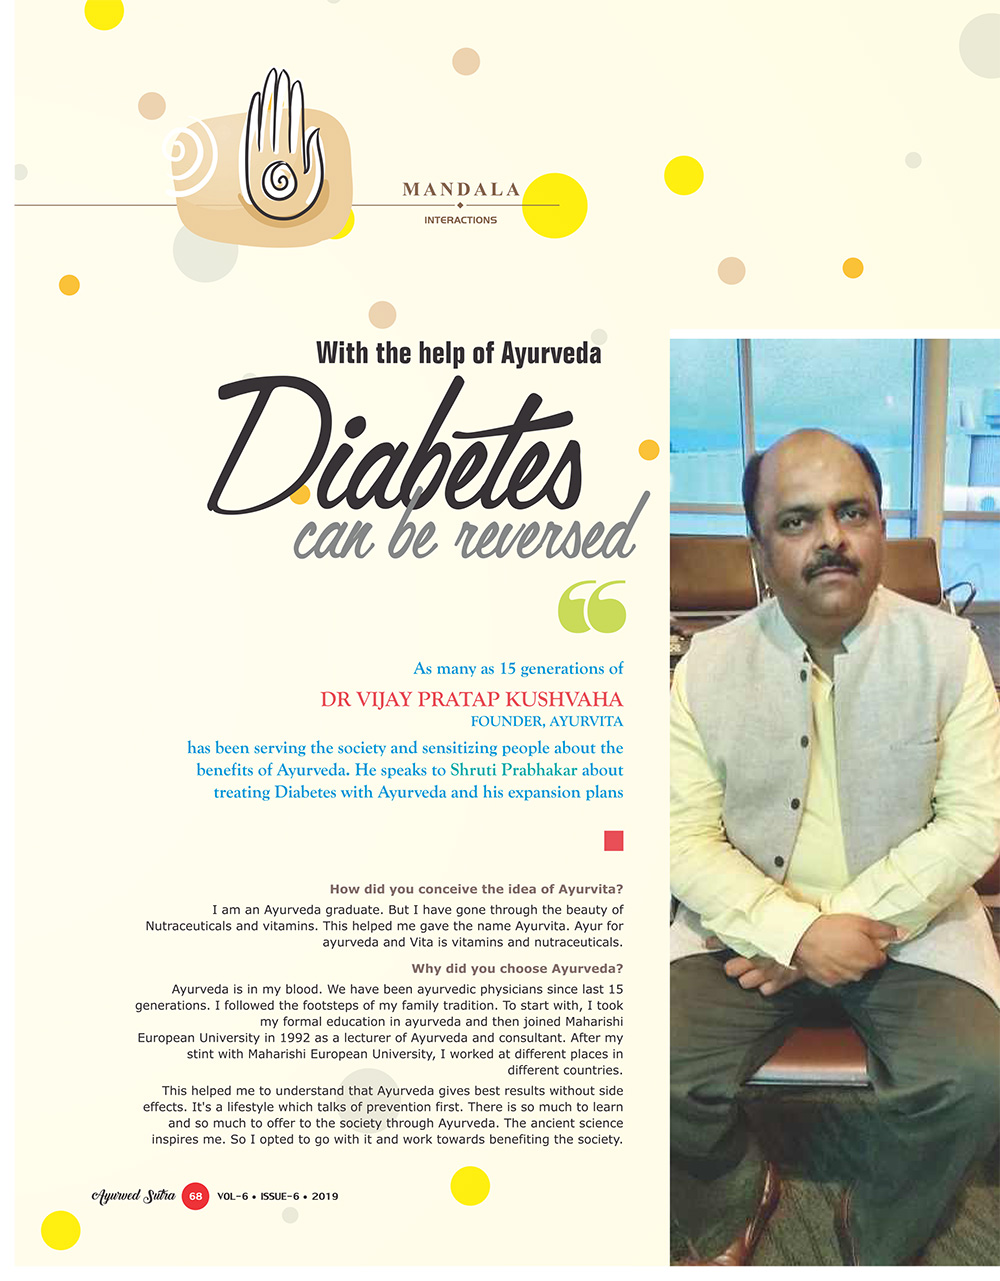 Ayurvedsutra Vol 06 issue 06 70 - Diabetes can be reversed